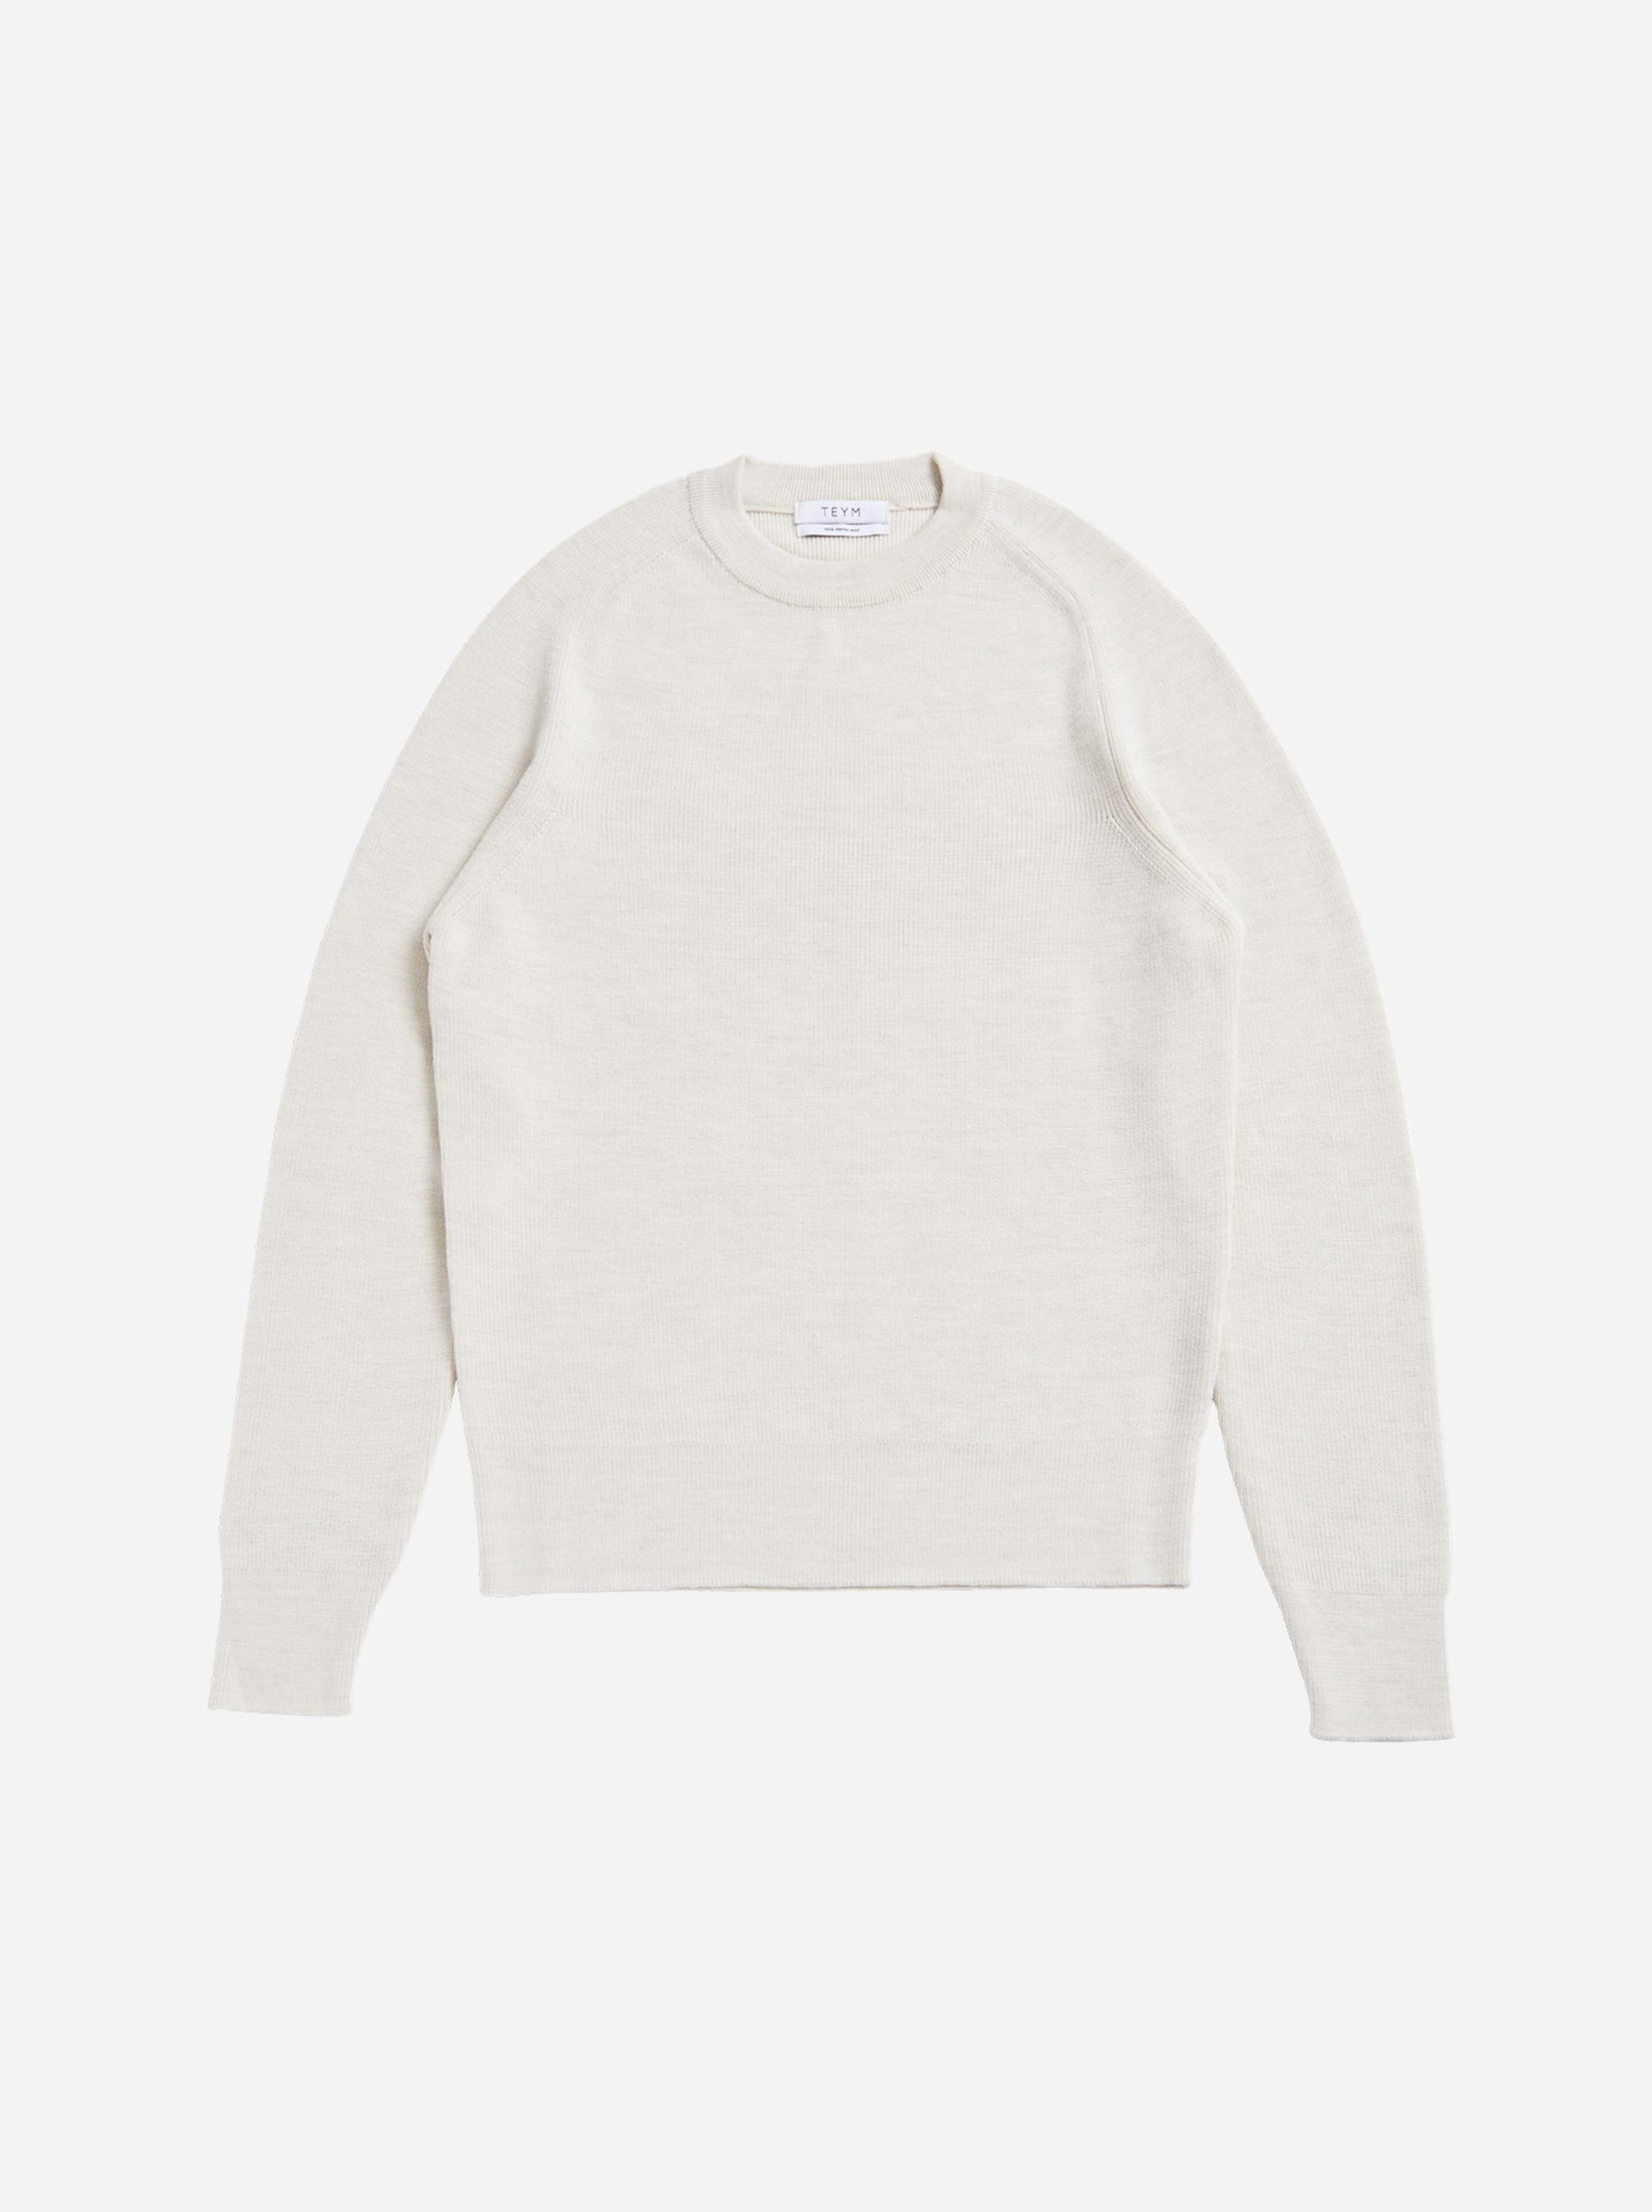 The Crewneck Sweater - White